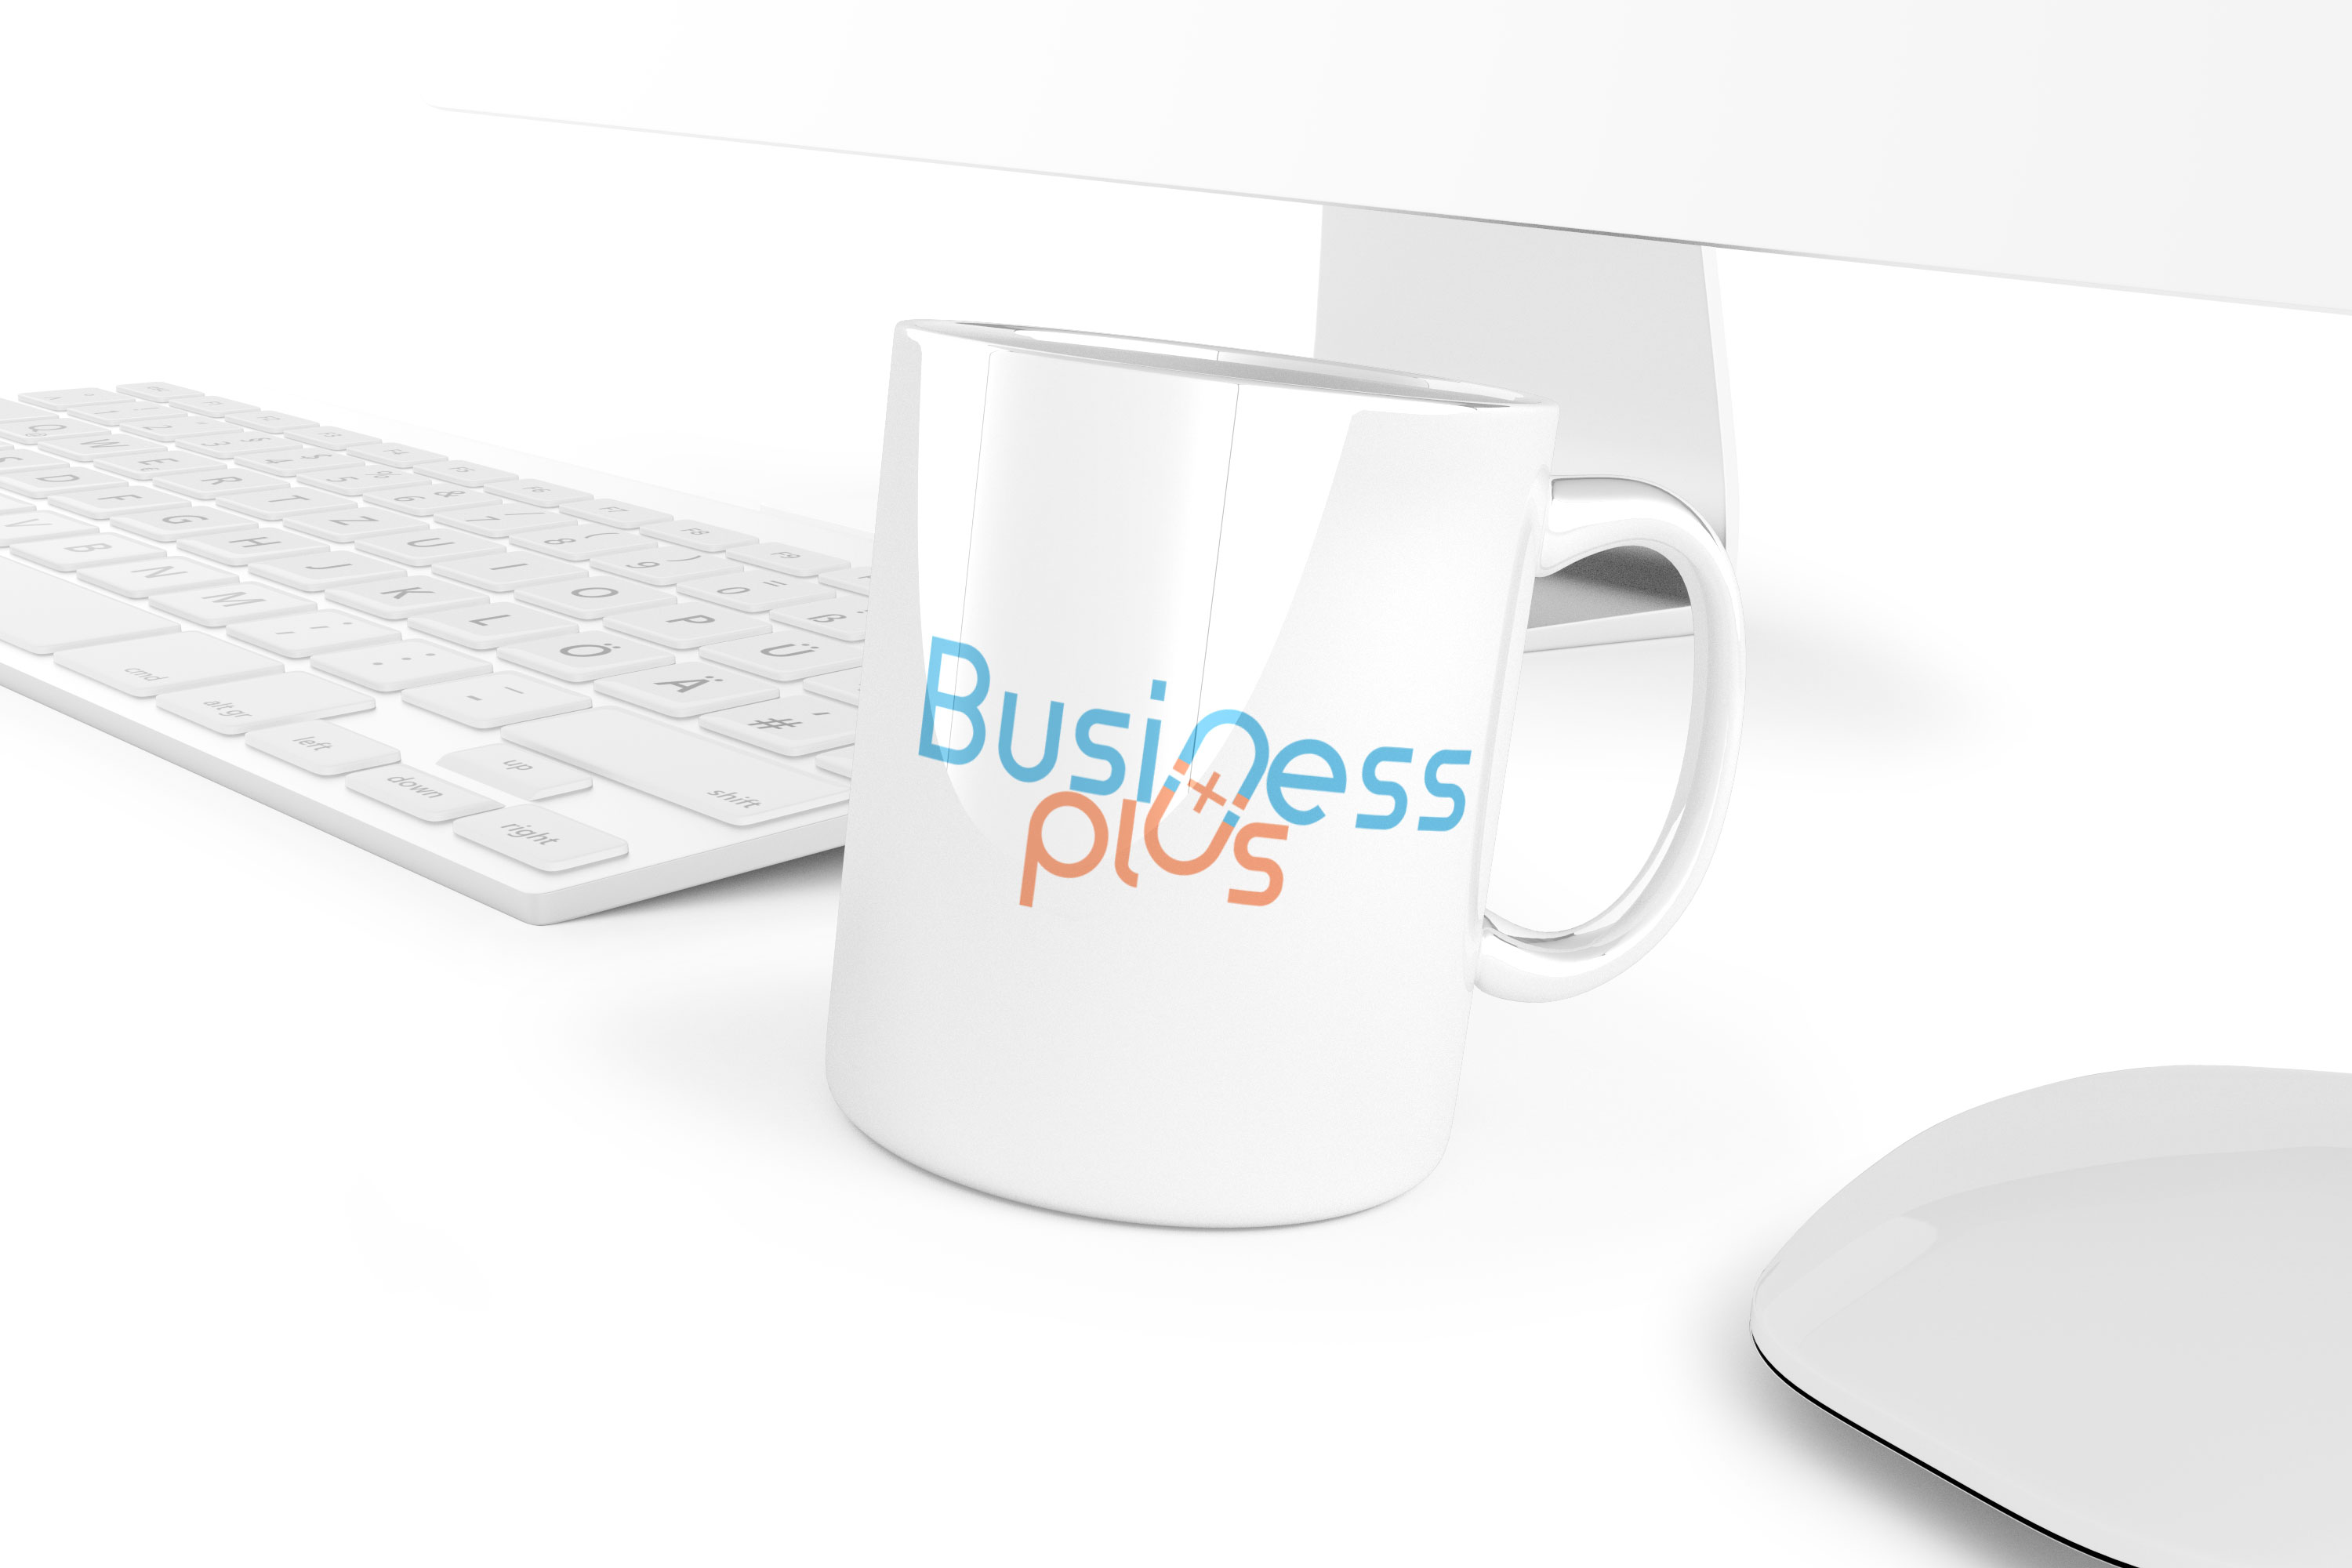 logo design business plus